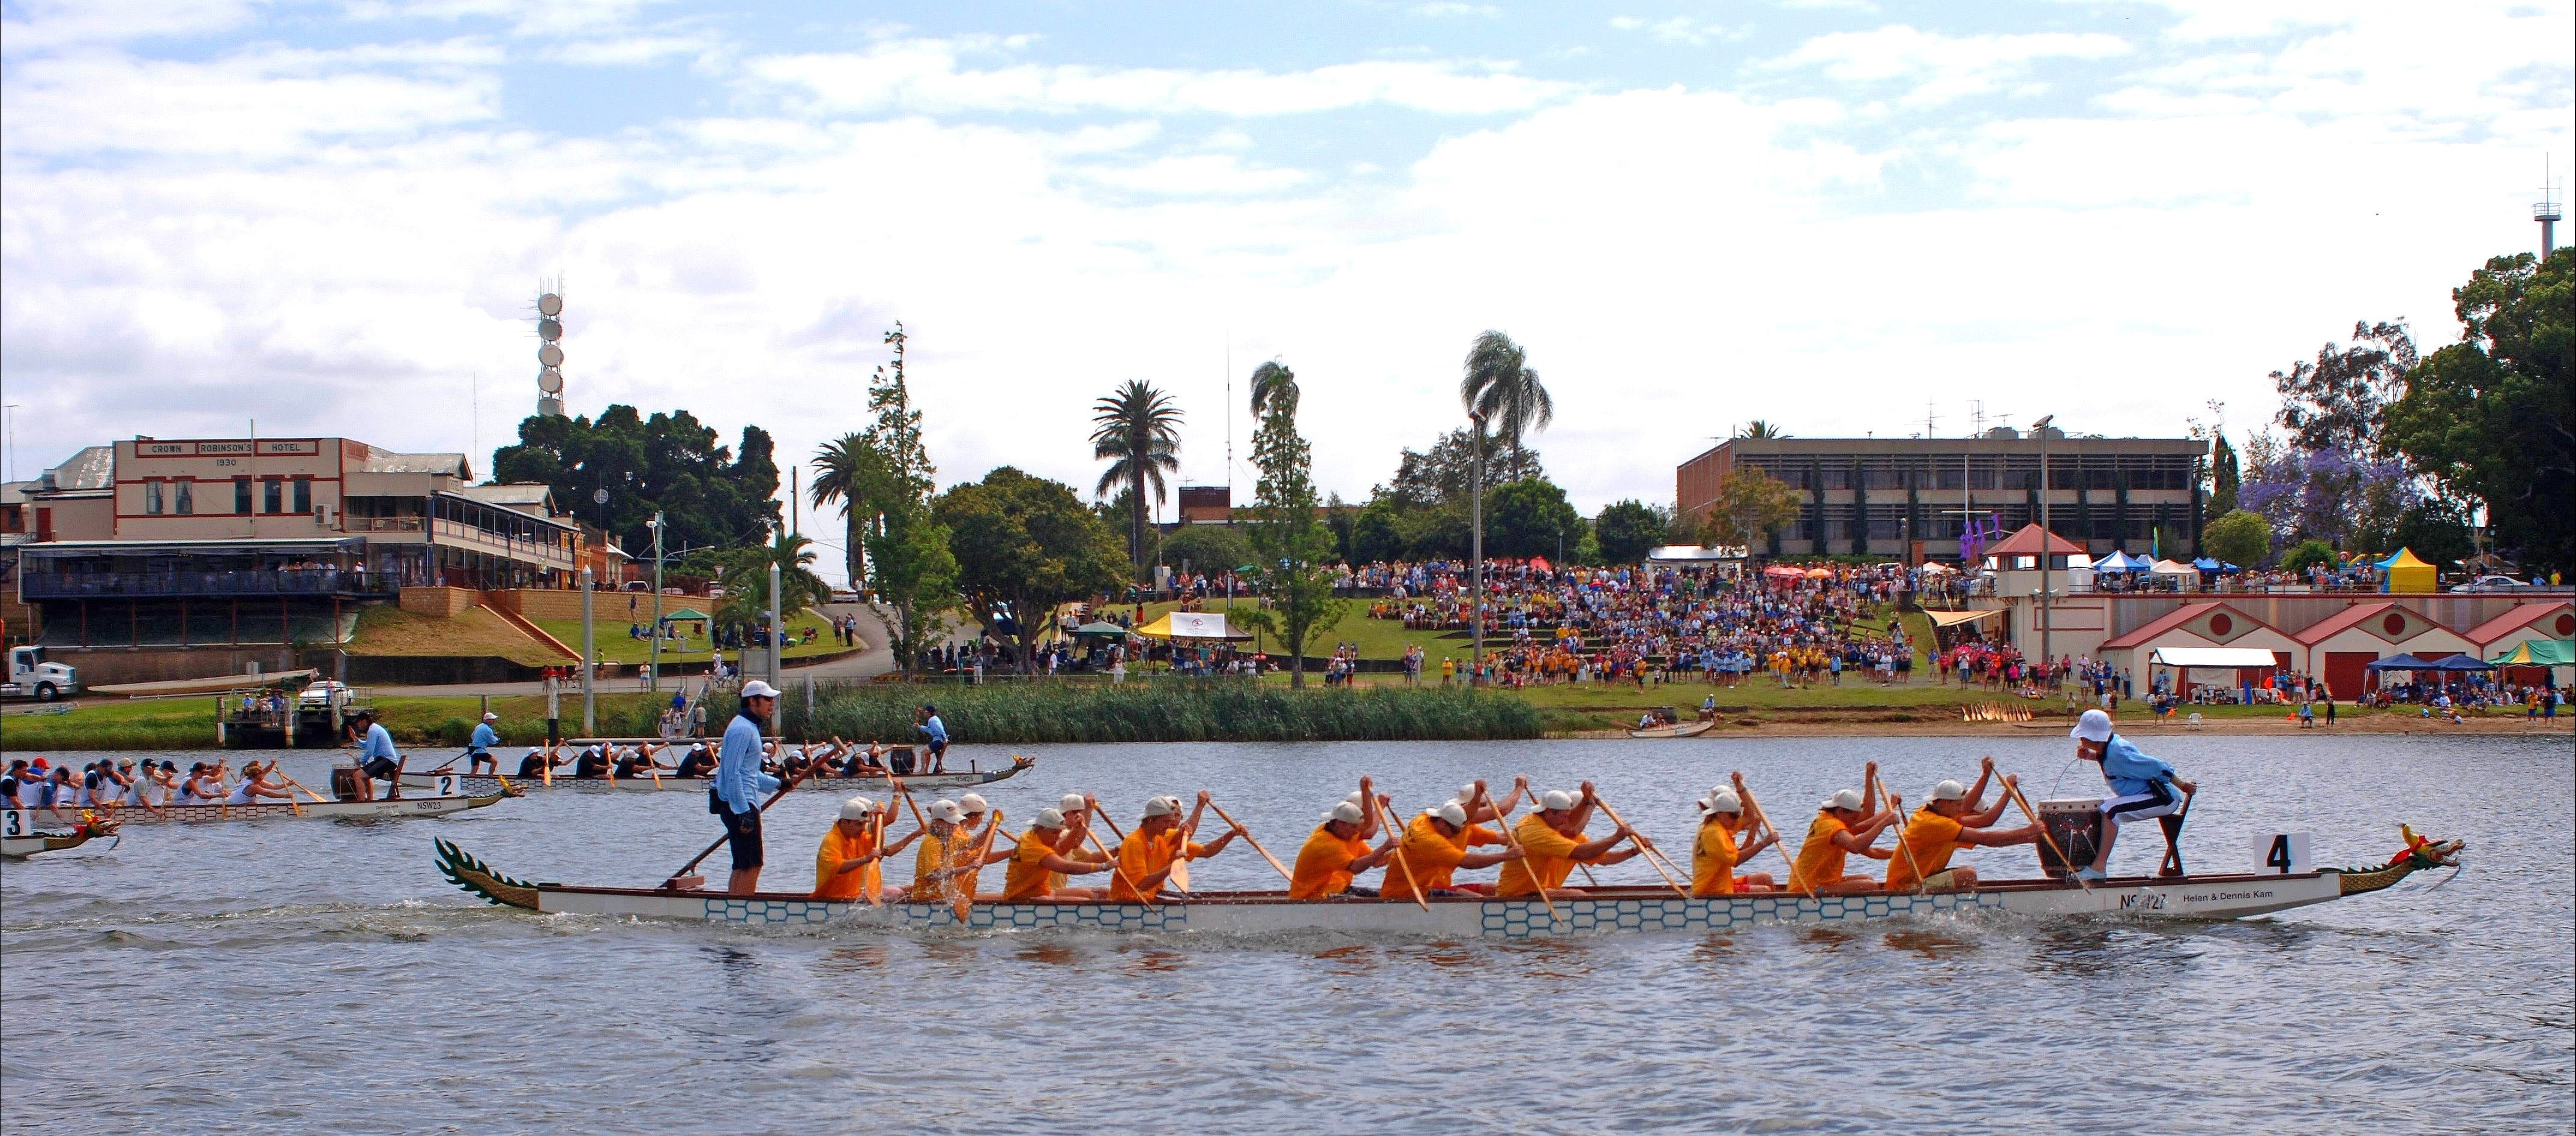 Jacaranda Dragon Boat Races - Foster Accommodation